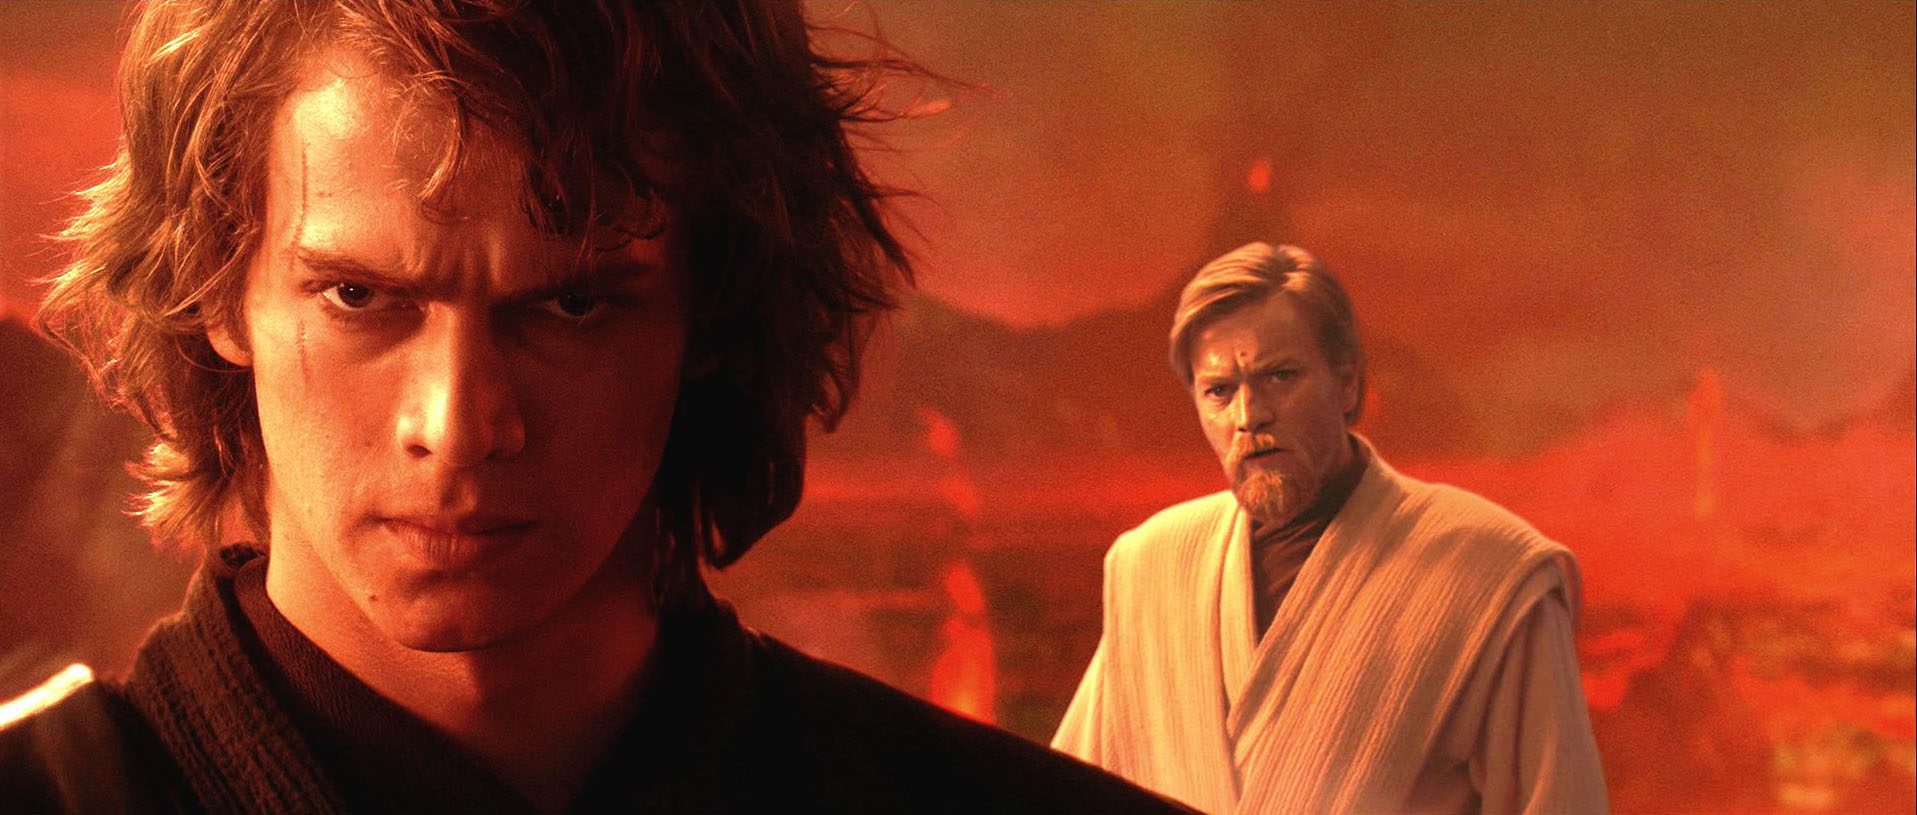 Not Guilty In Defense Of Star Wars Episode Iii Revenge Of The Sith